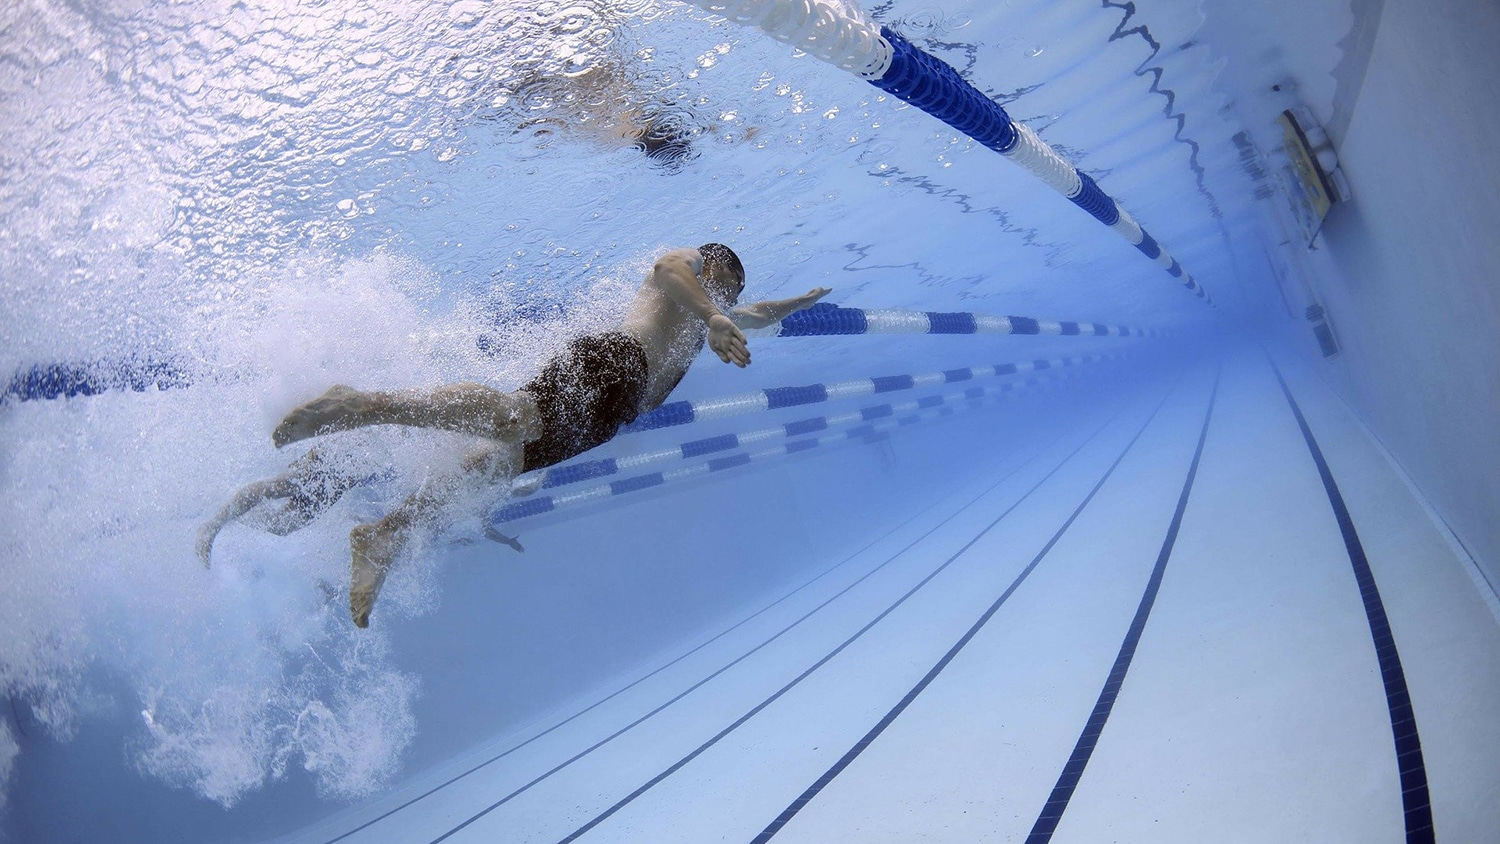 A swimmer in a pool moves through the water, photographed from underwater